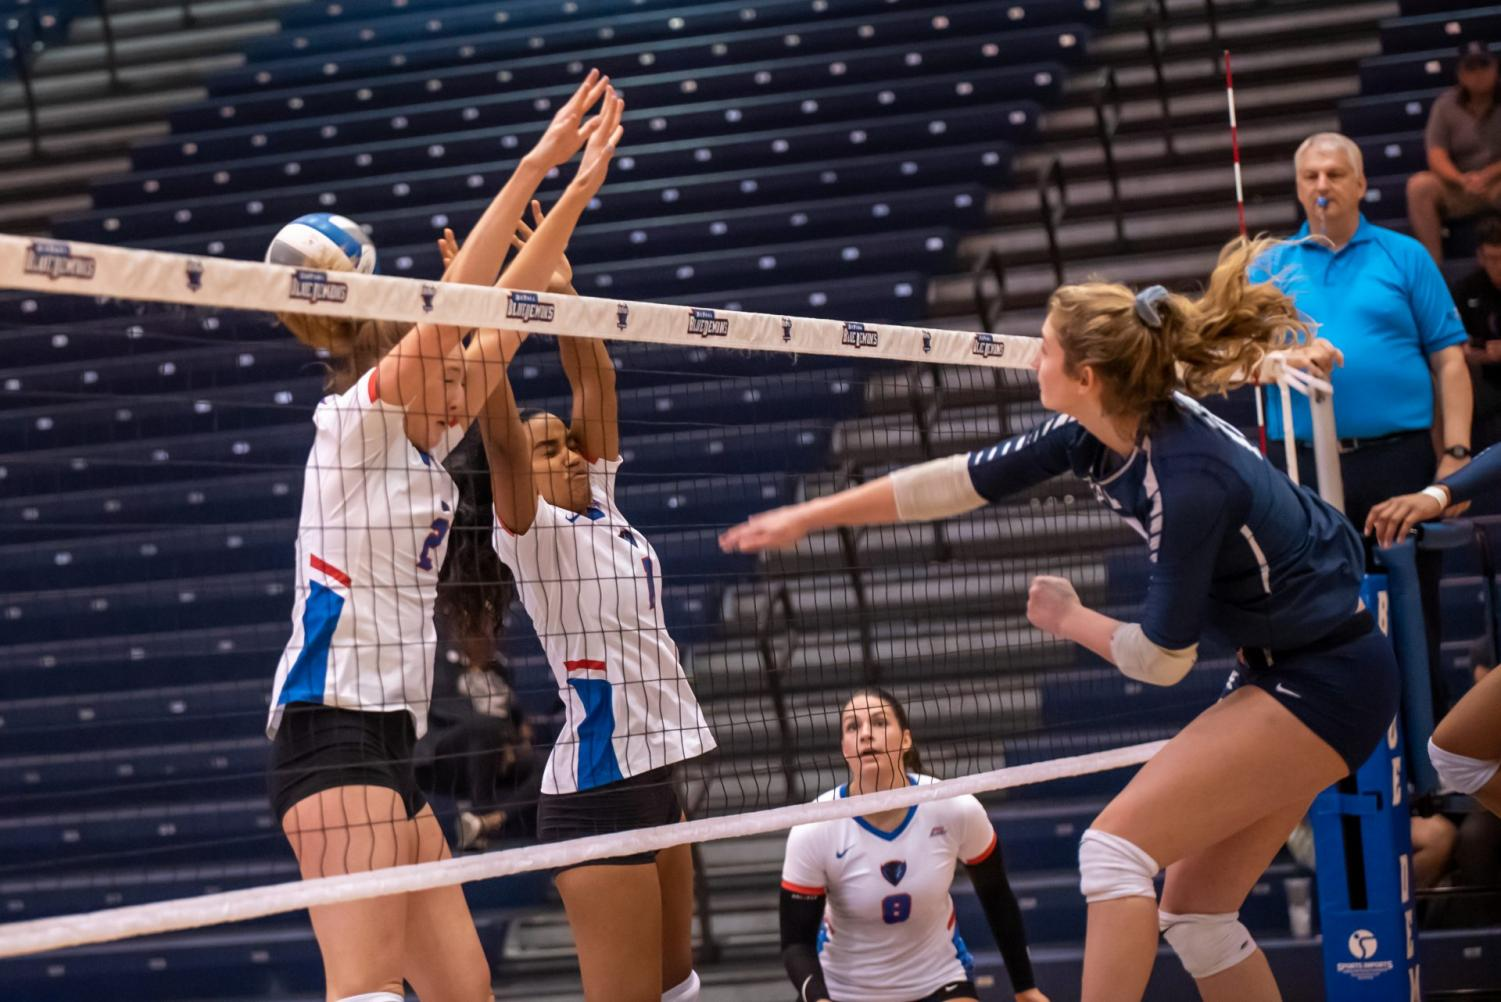 DePaul senior Brittany Maxwell goes up for a hit against Seton Hall on Saturday at McGrath-Phillips Arena. The Blue Demons won the match in four sets.